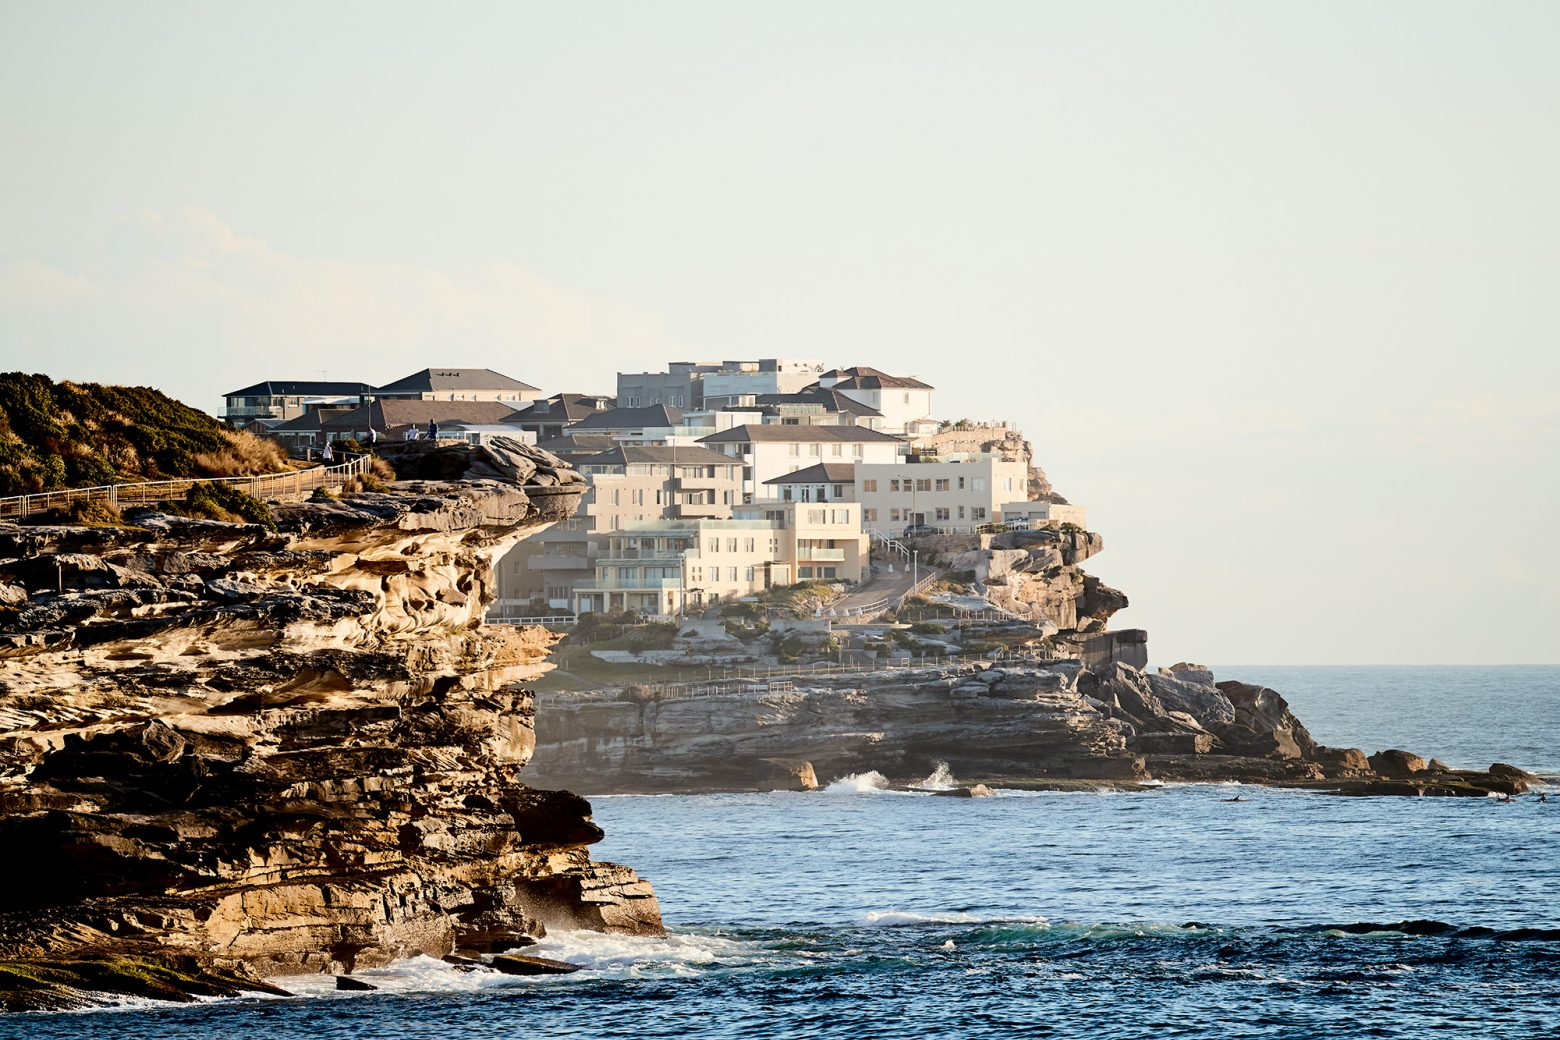 The famous walk from Bronte to Bondi